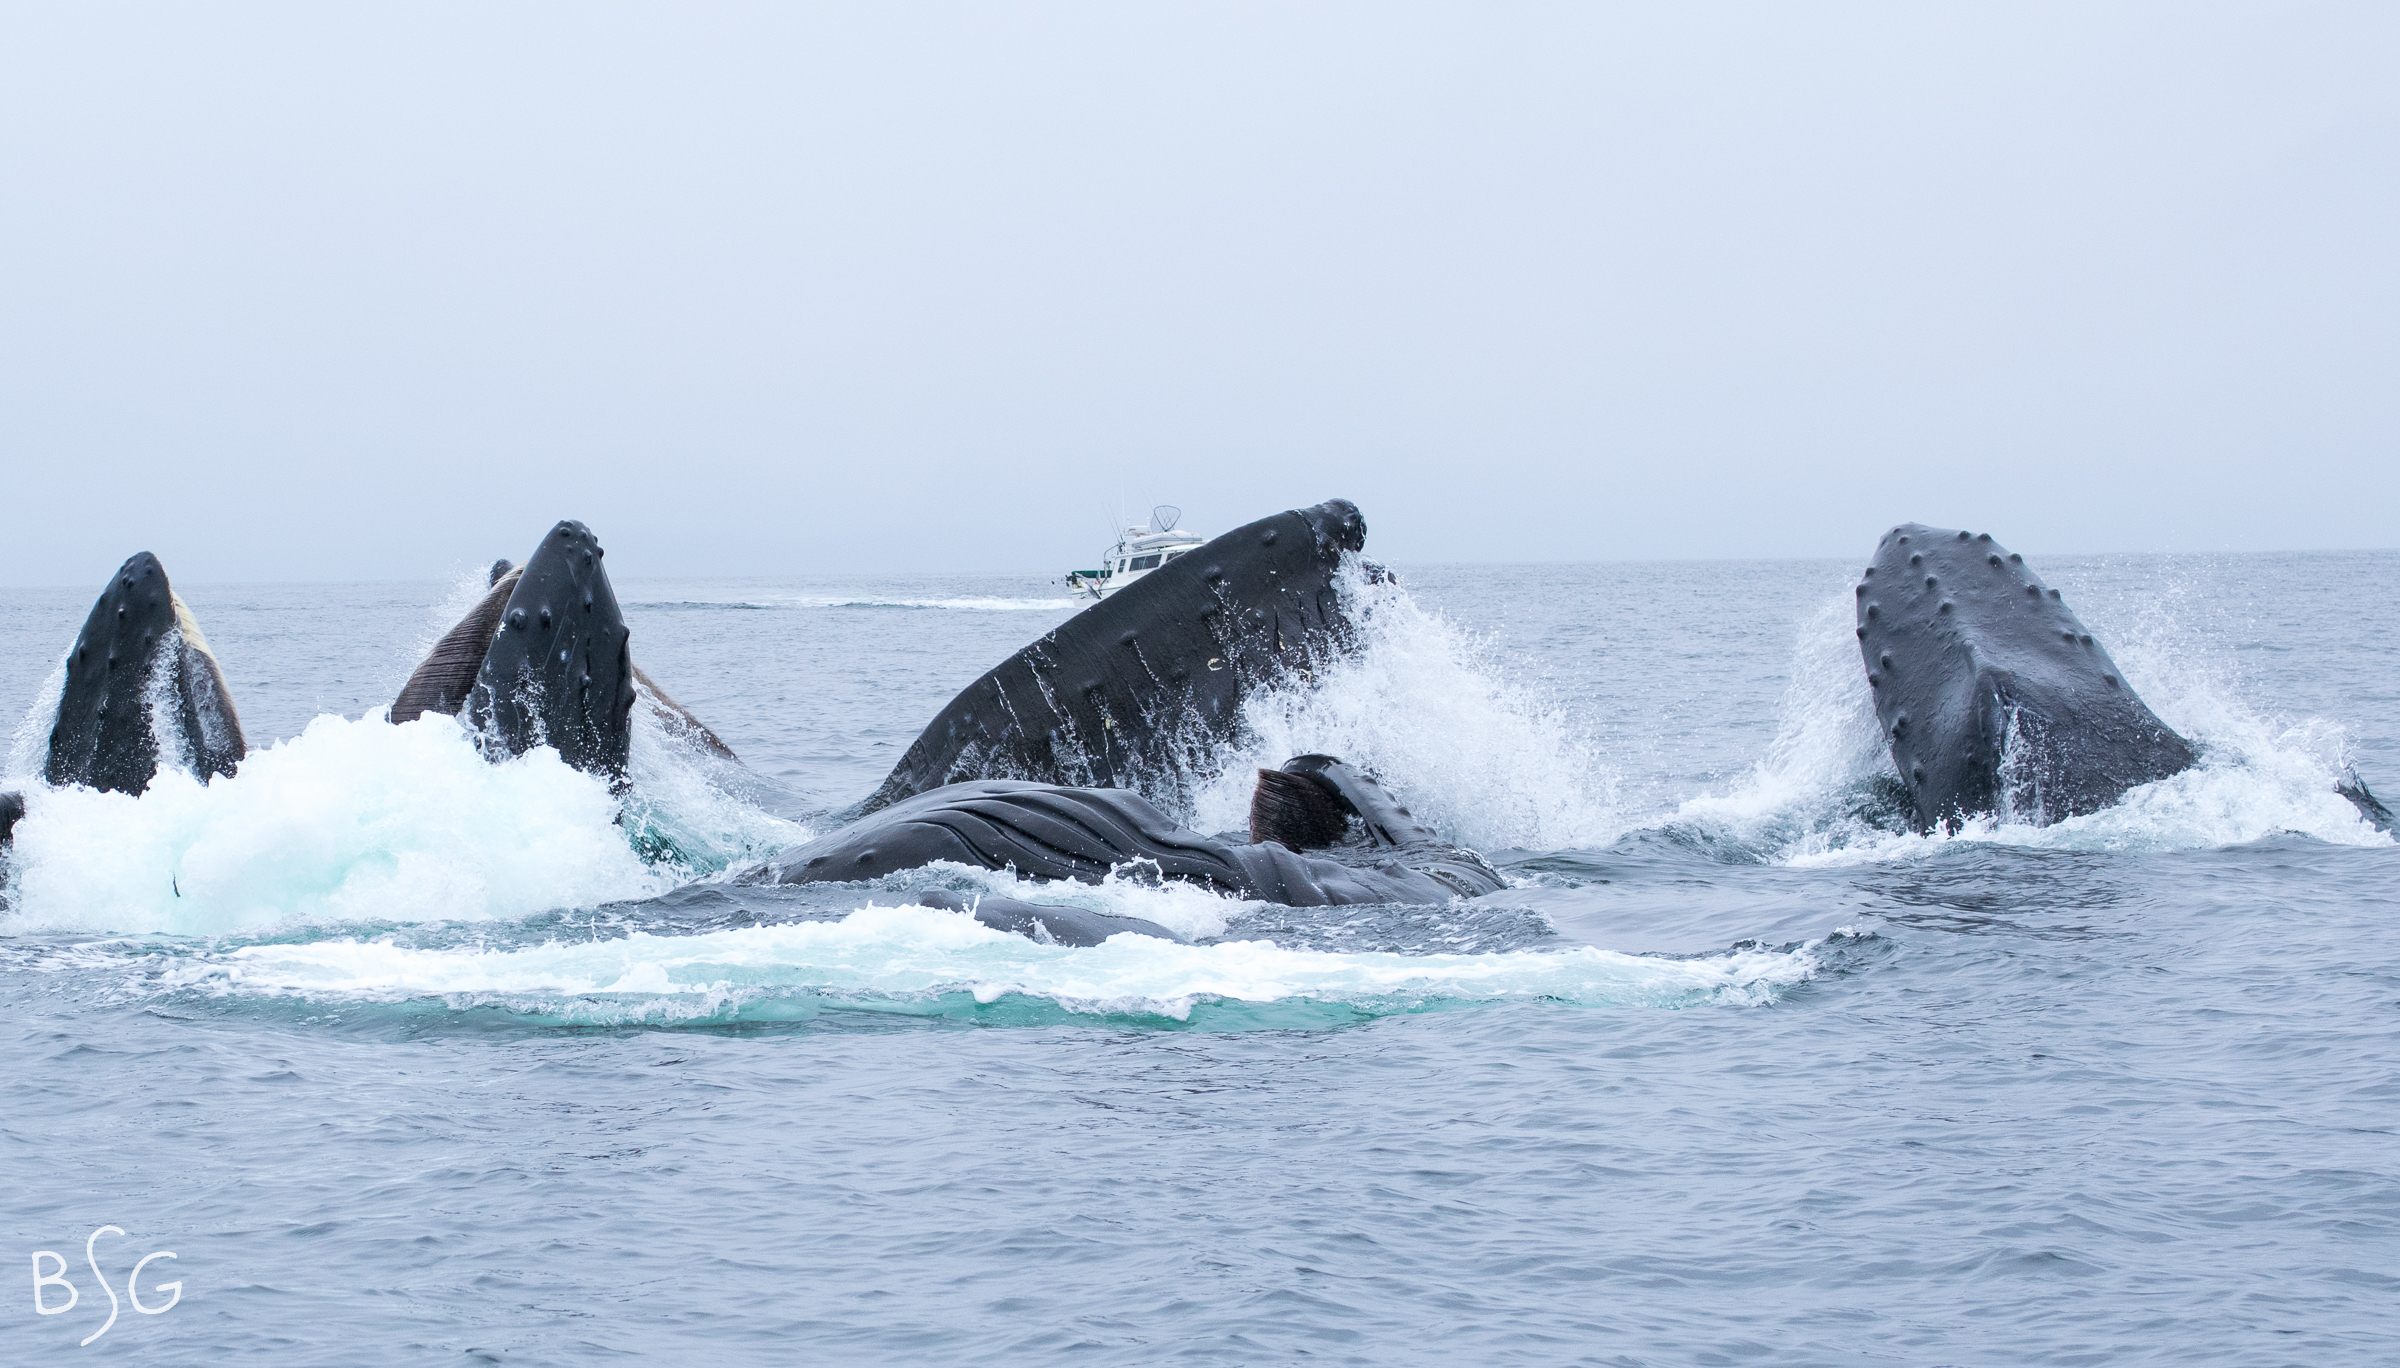 The final humpback (nine total) surfaces to the far right.